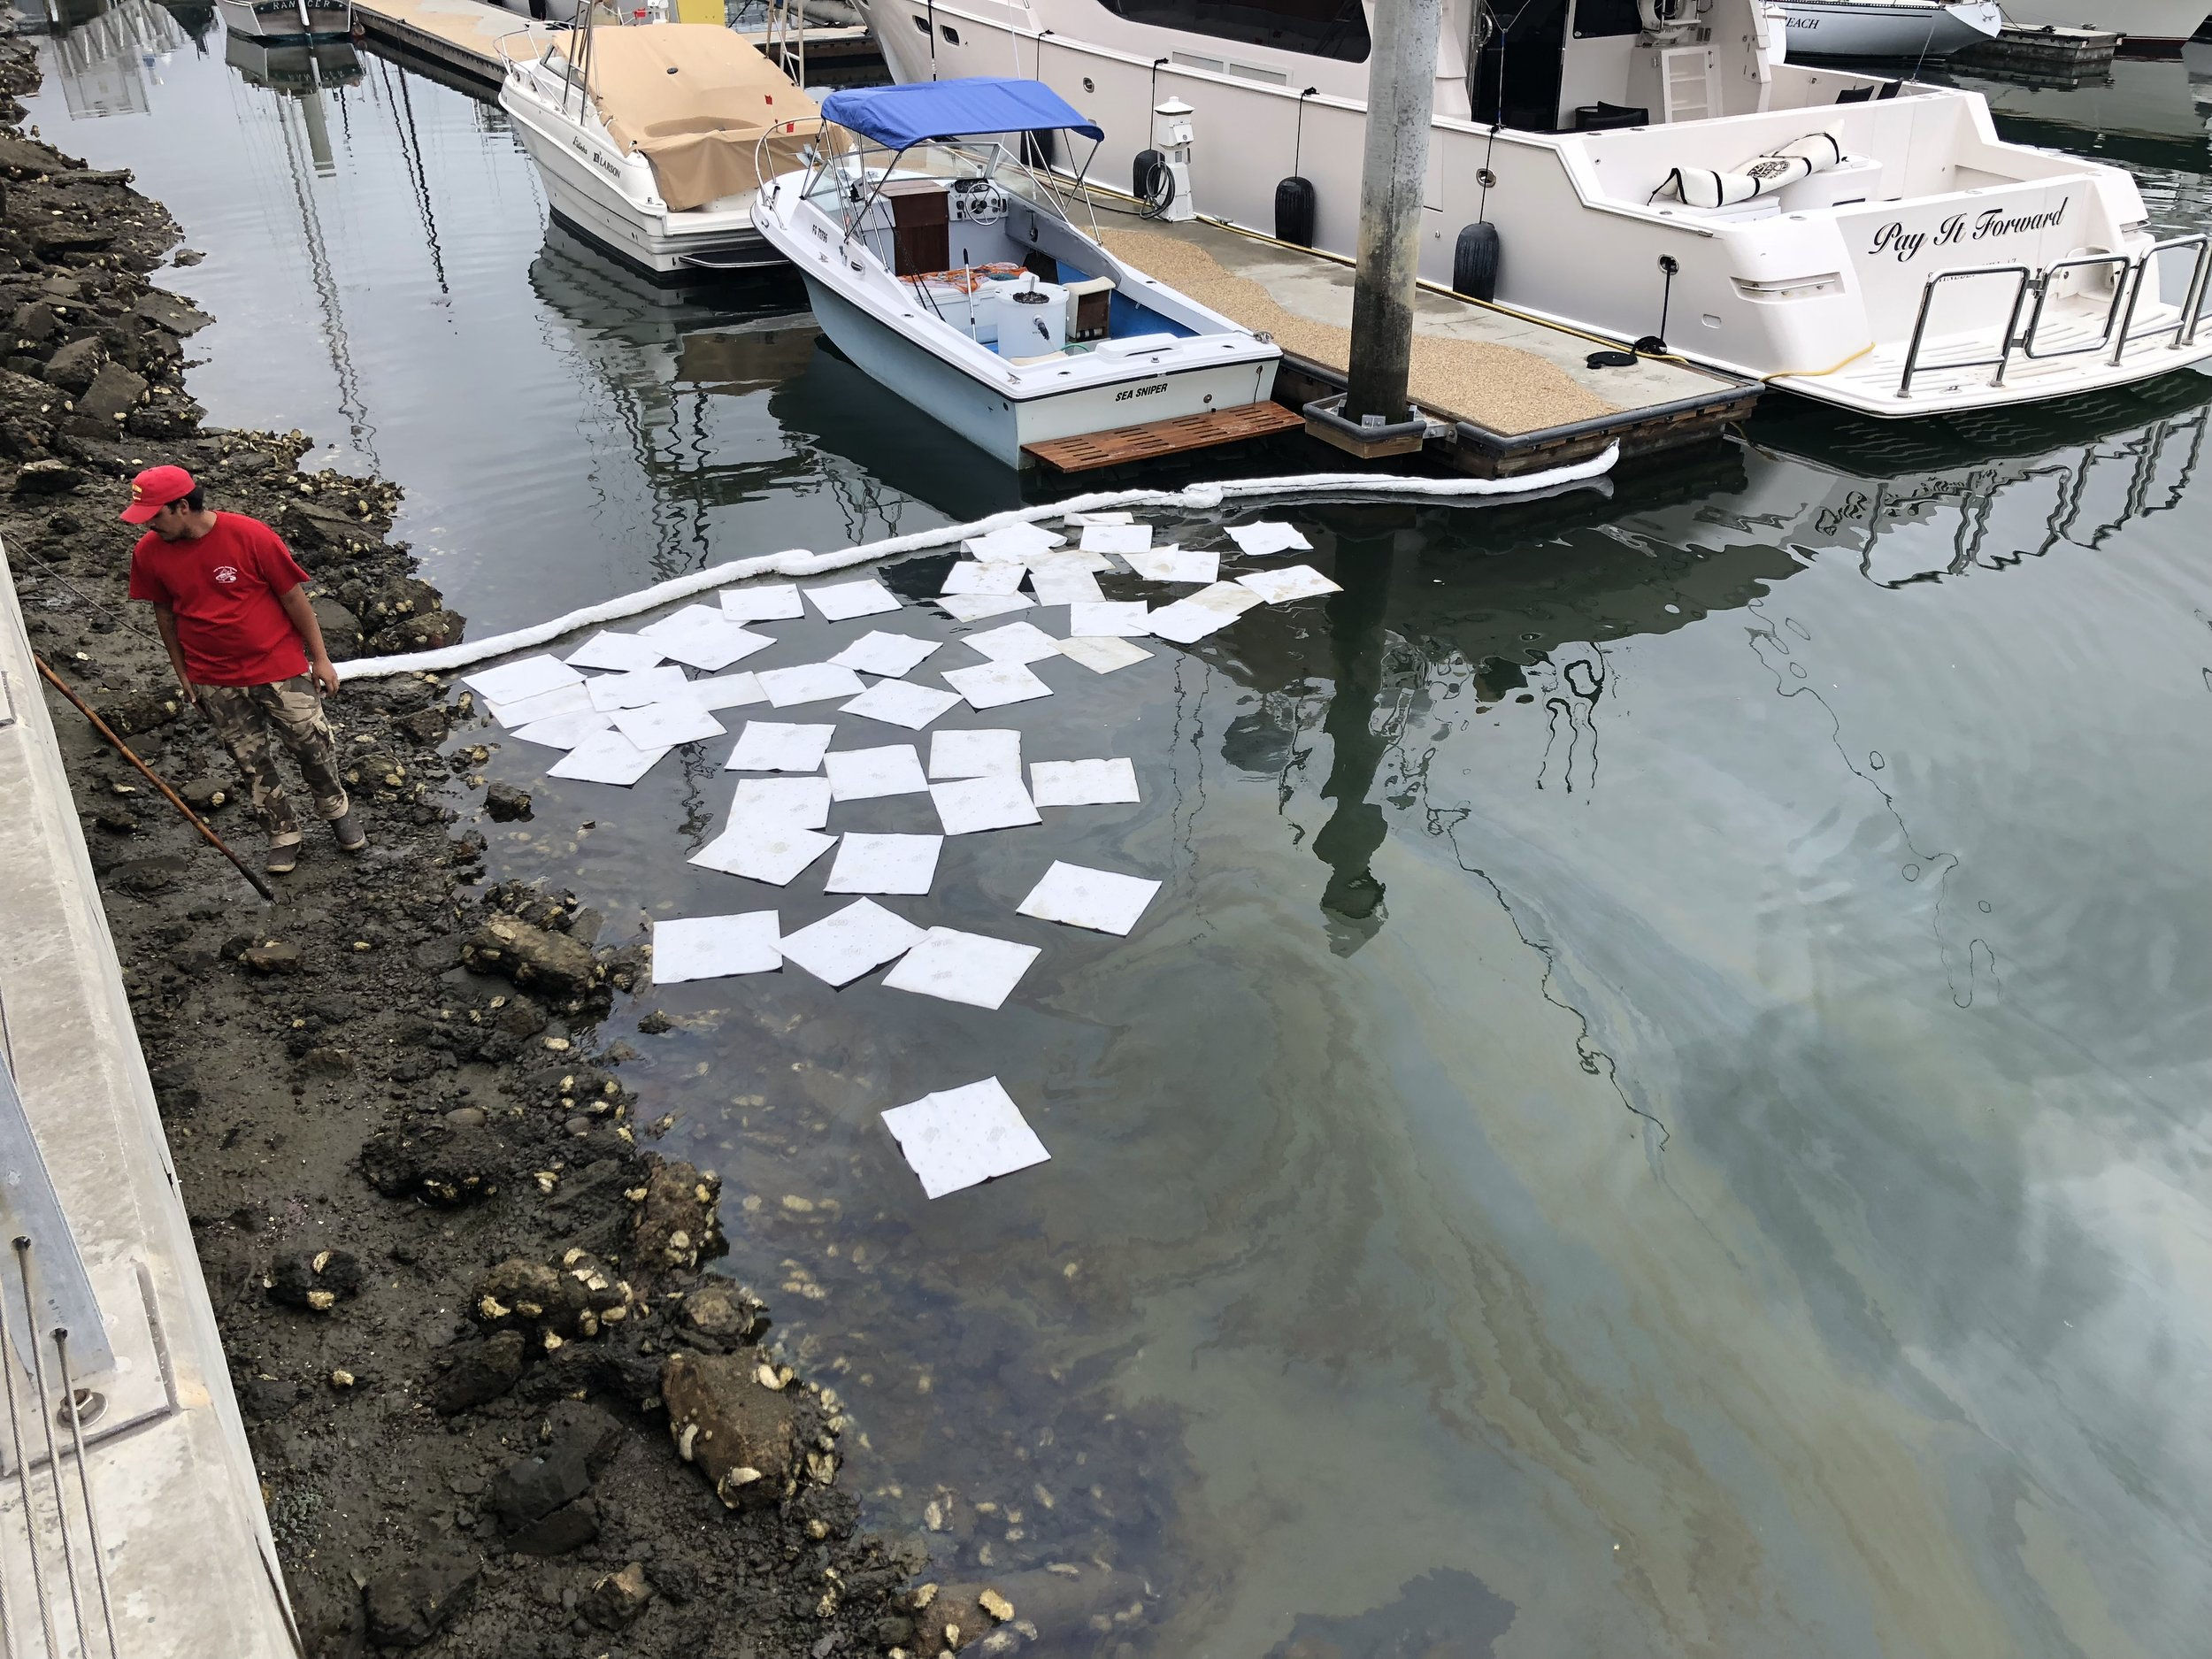 gas-spill-cleanup-americas-cup-harbor-point-loma-april-30-2019.jpg